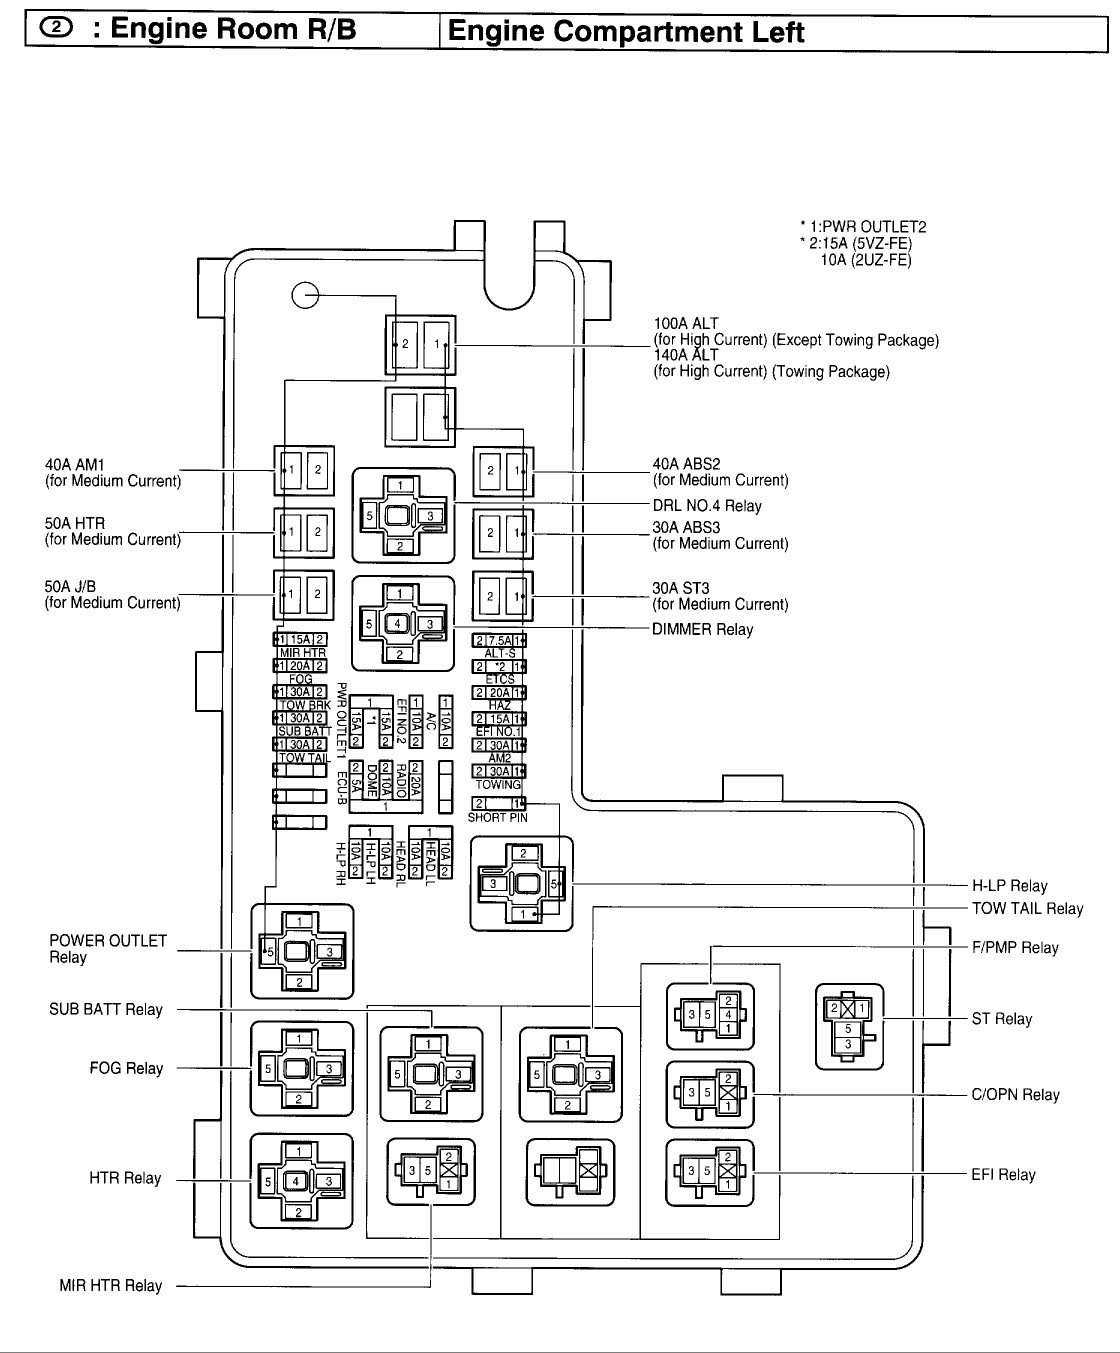 hight resolution of 2003 sequoia ac wiring diagram wiring diagram advance 2003 sequoia ac wiring diagram